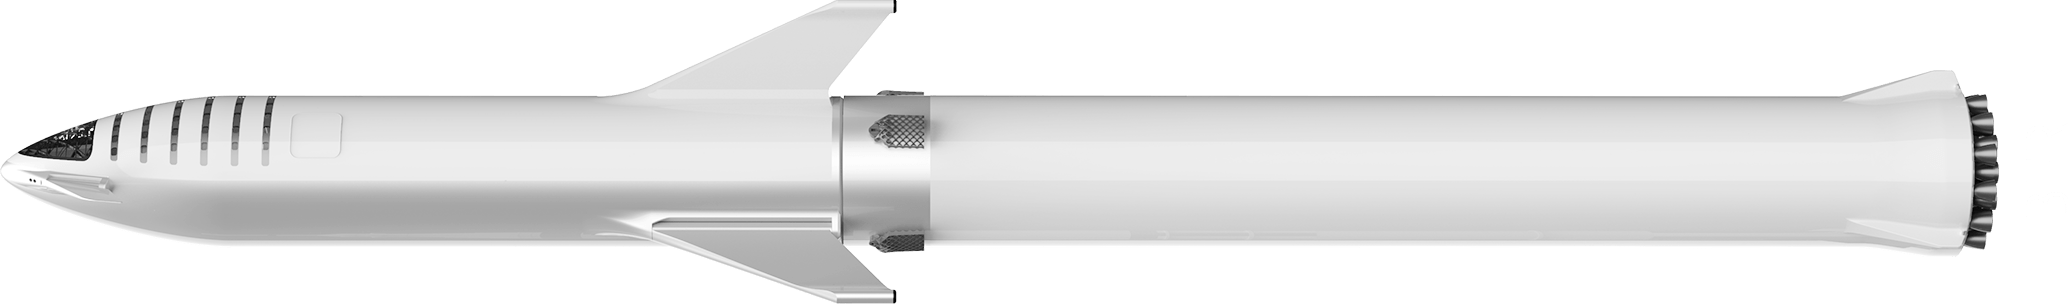 BFR booster and spaceship overview (SpaceX)